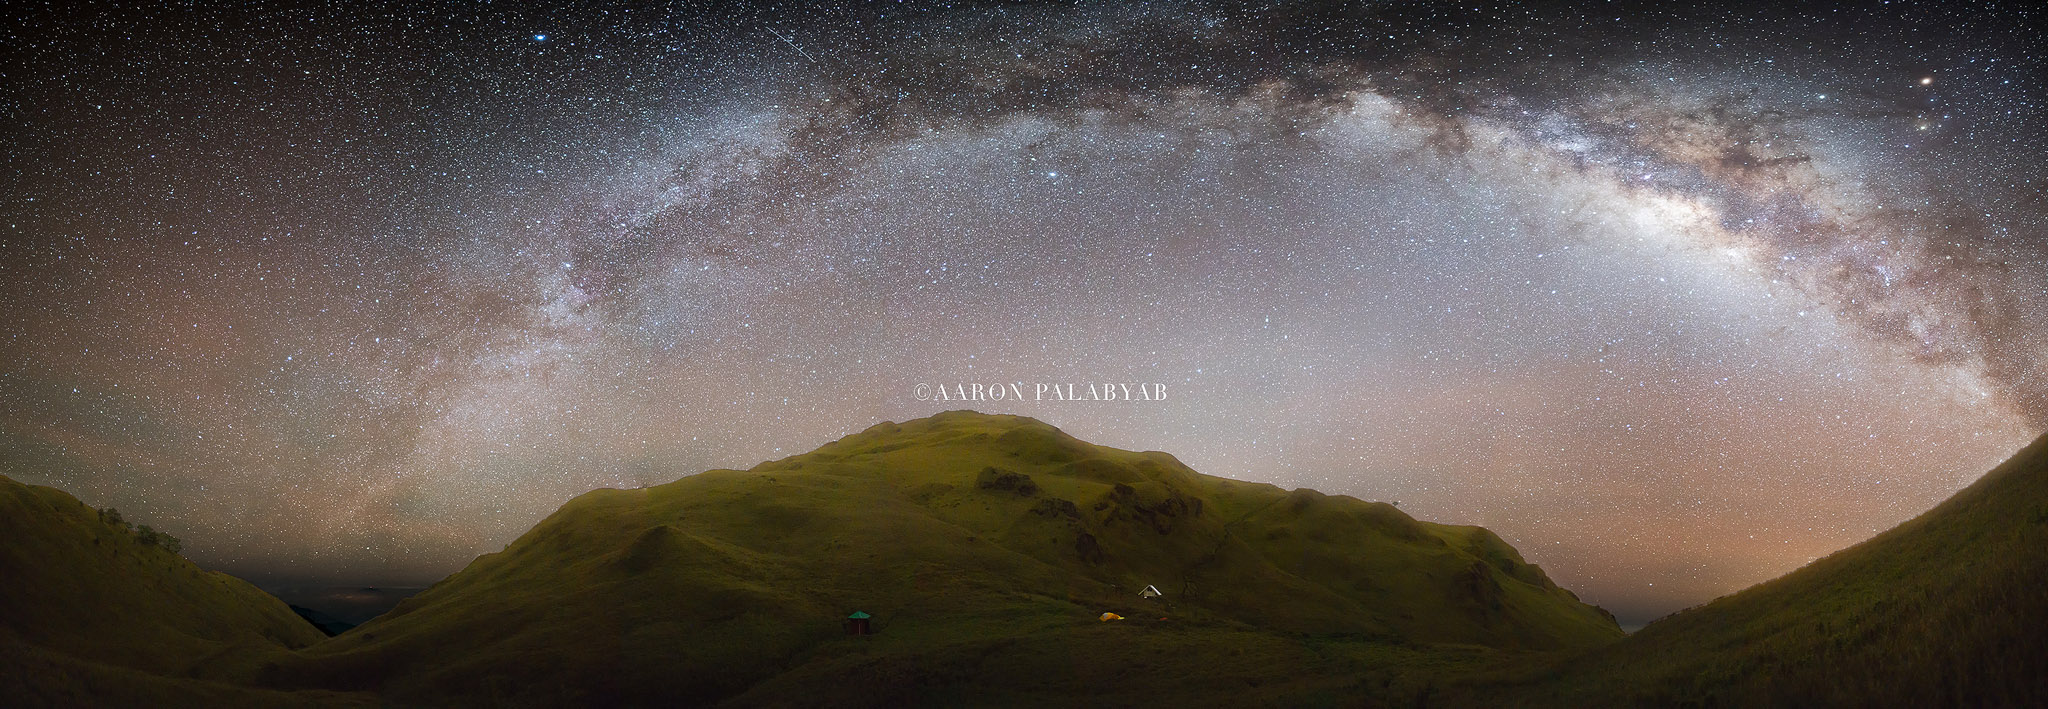 A full Milky Way galactic core over Mt. Pulag